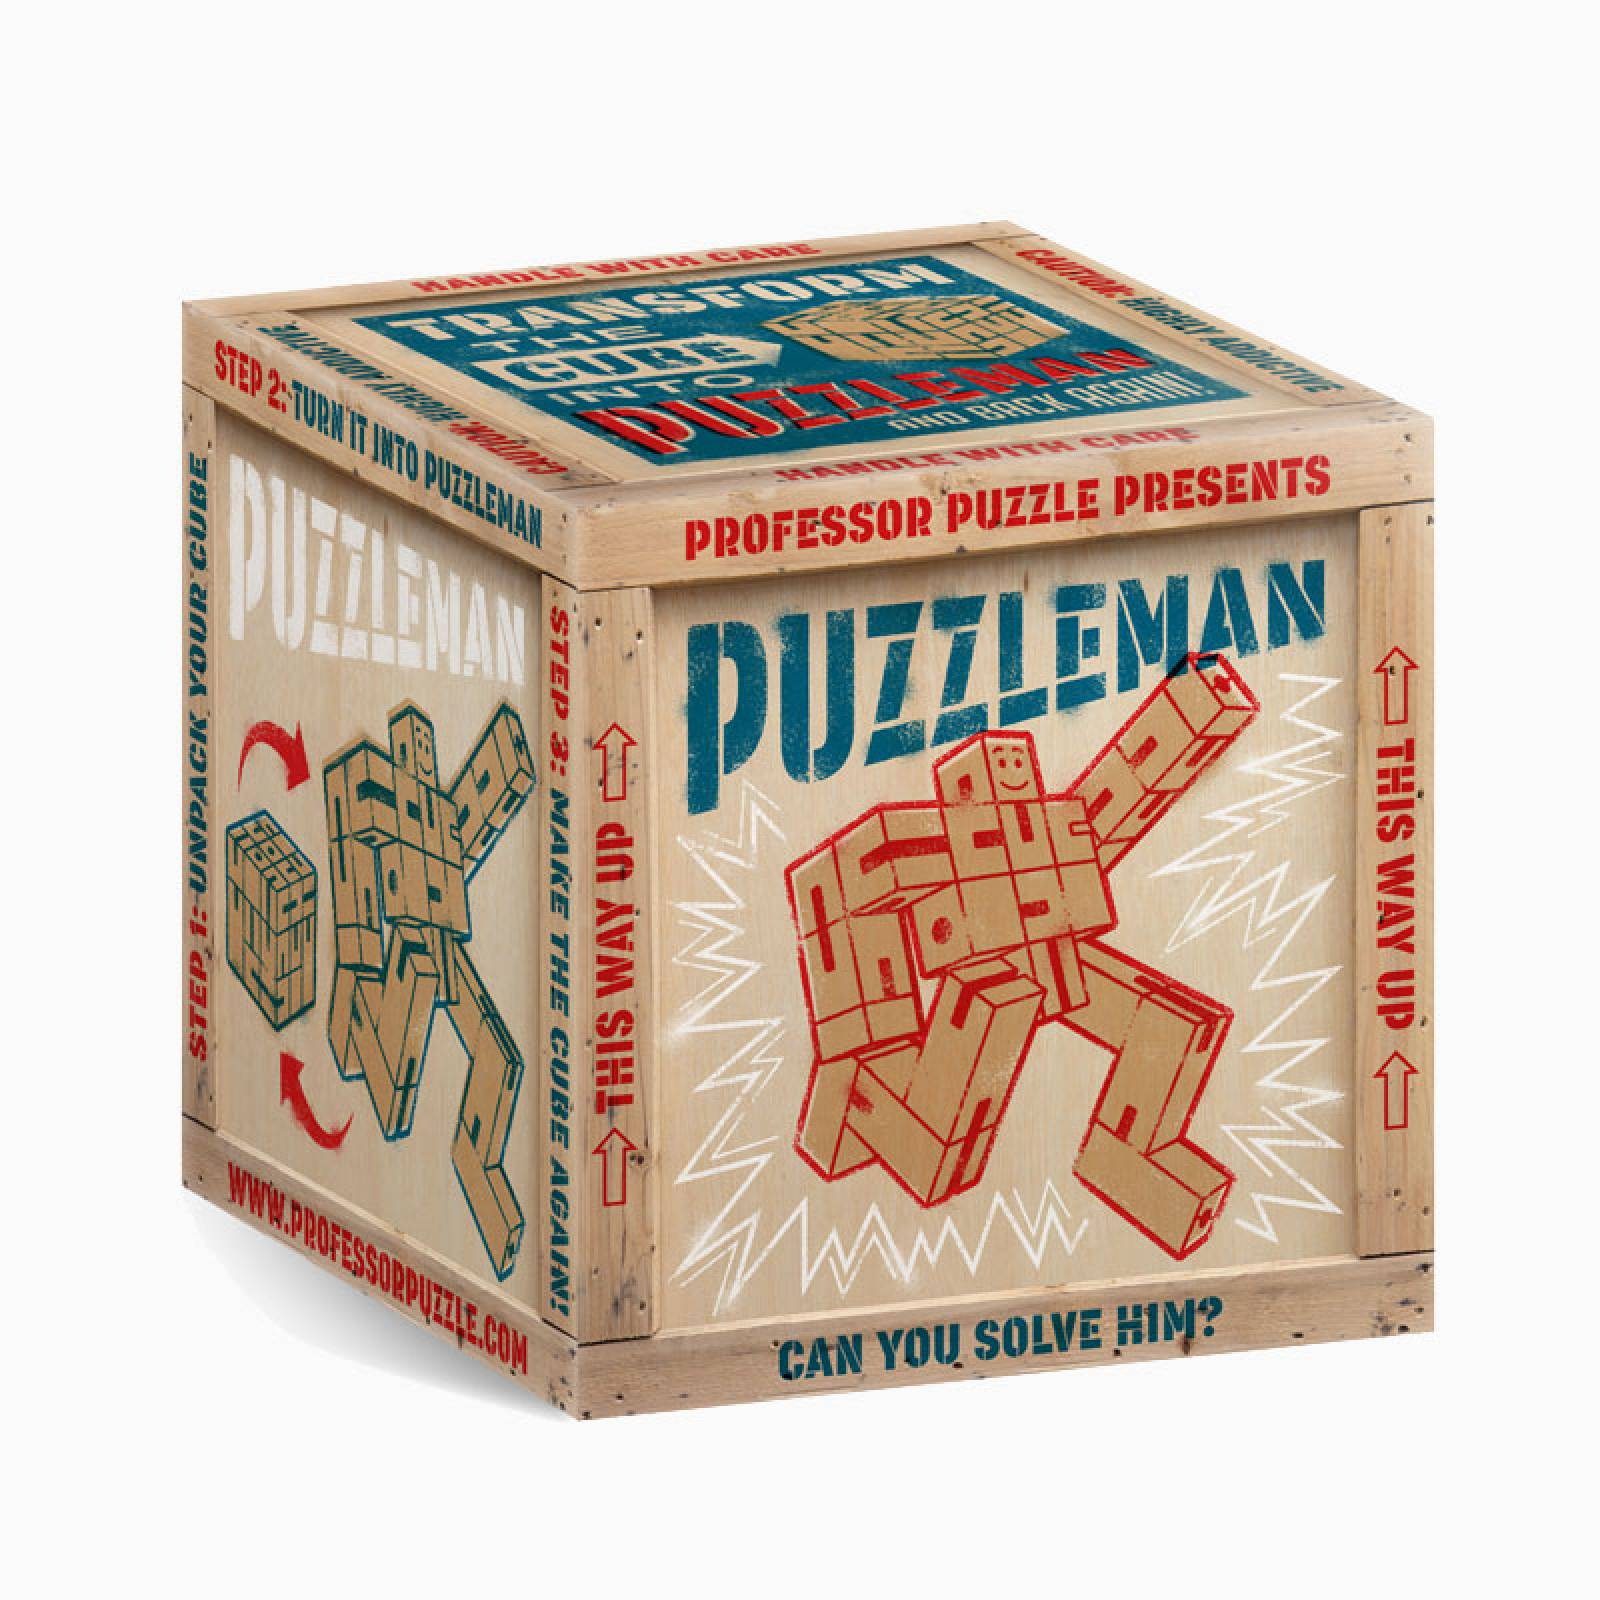 Natural Wooden Puzzleman Cube Puzzle